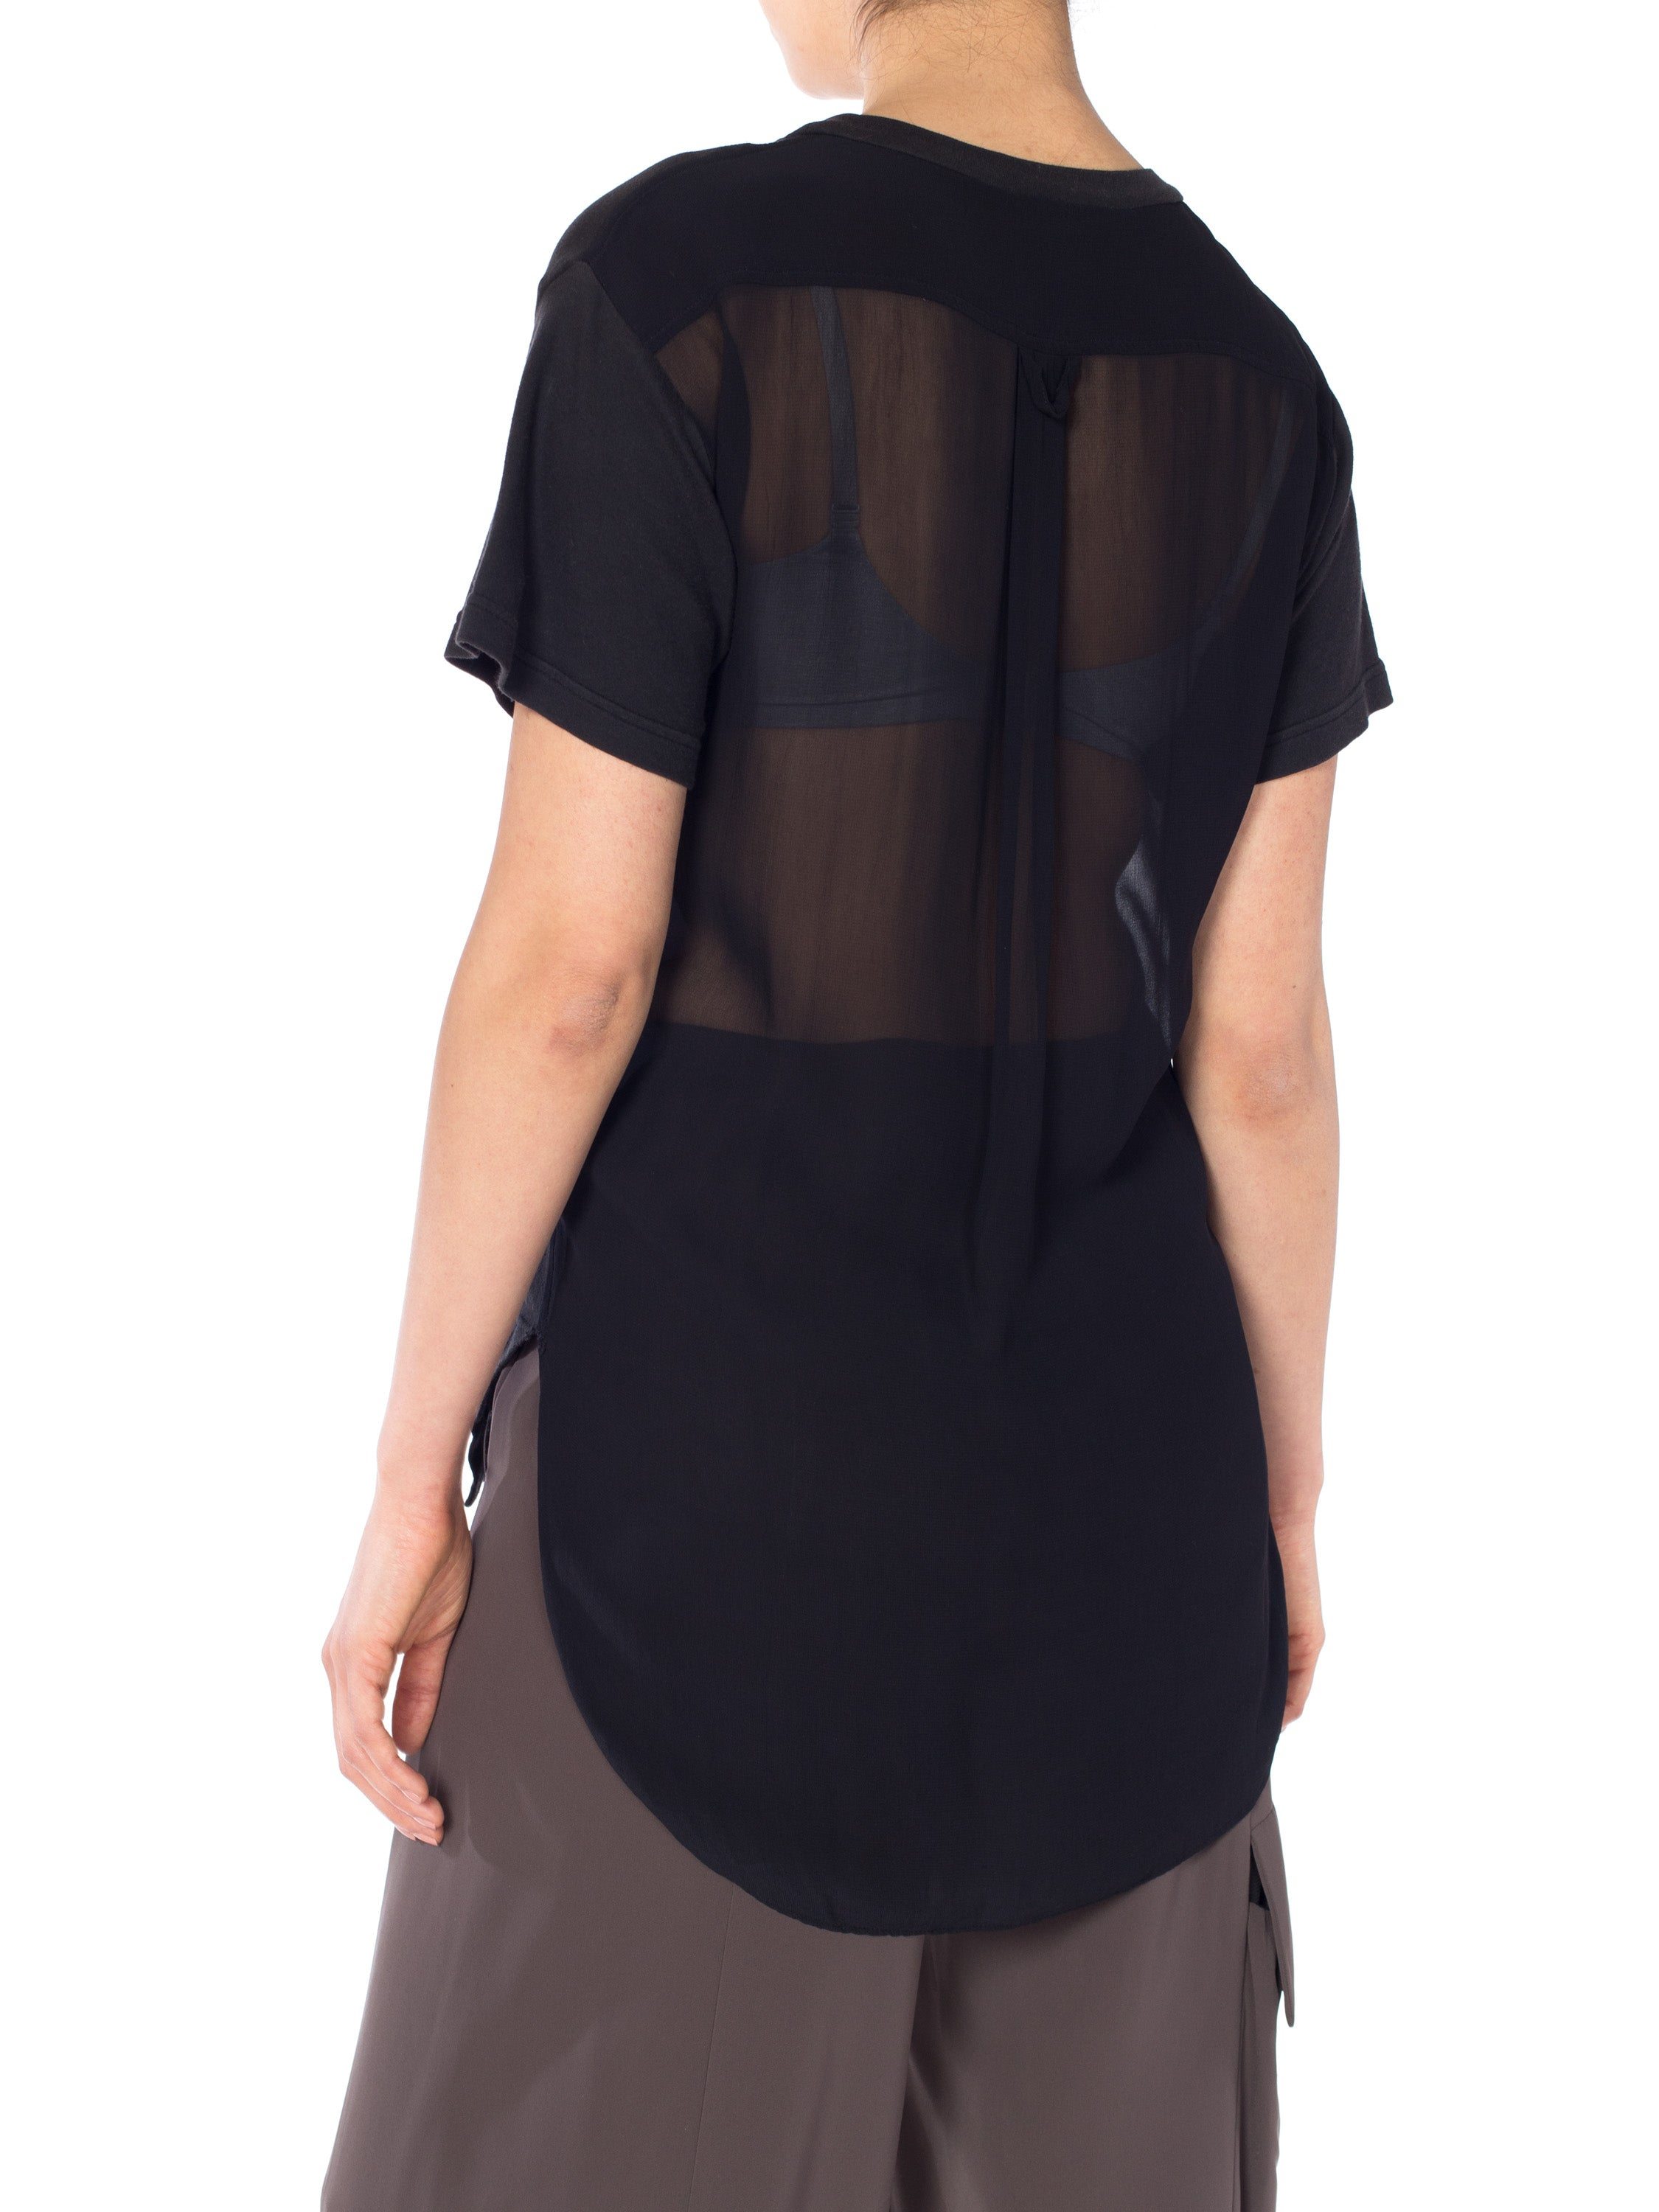 1990S MOSCHINO Black Cotton T-Shirt With Sheer Chiffon Back